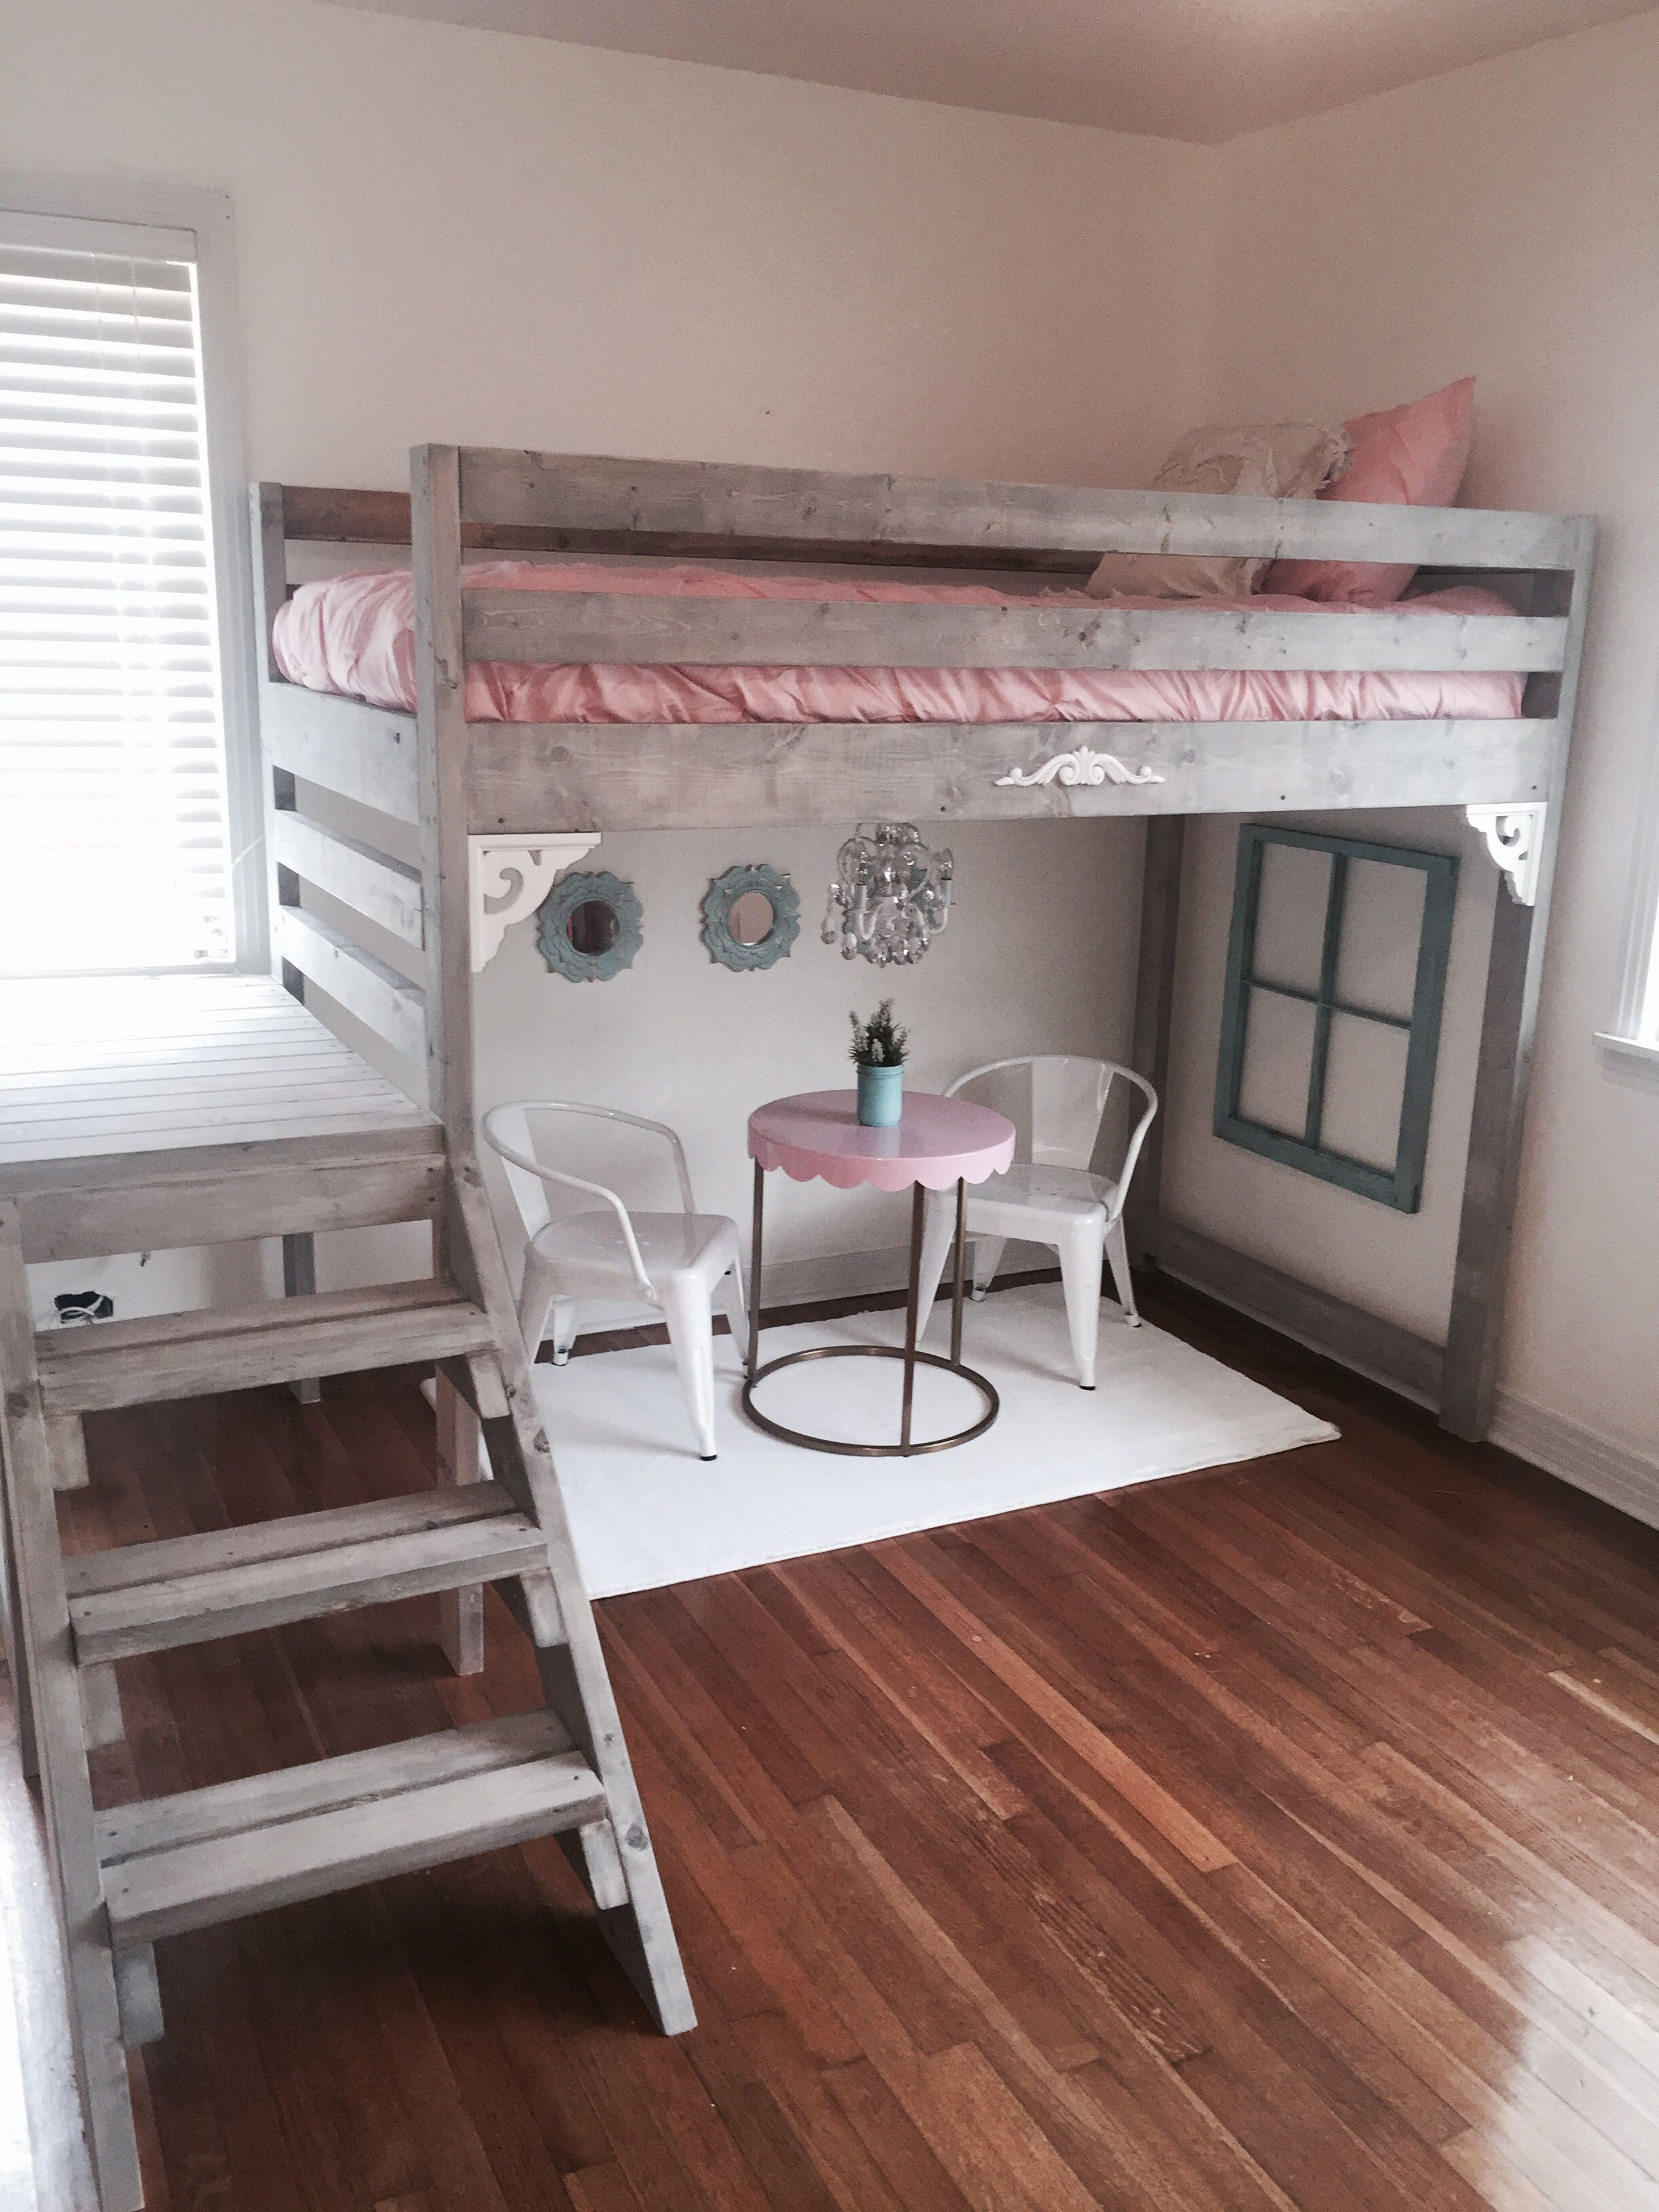 Loft bed decorating ideas  Ana white loft bed I made for my daughters room  Furniture